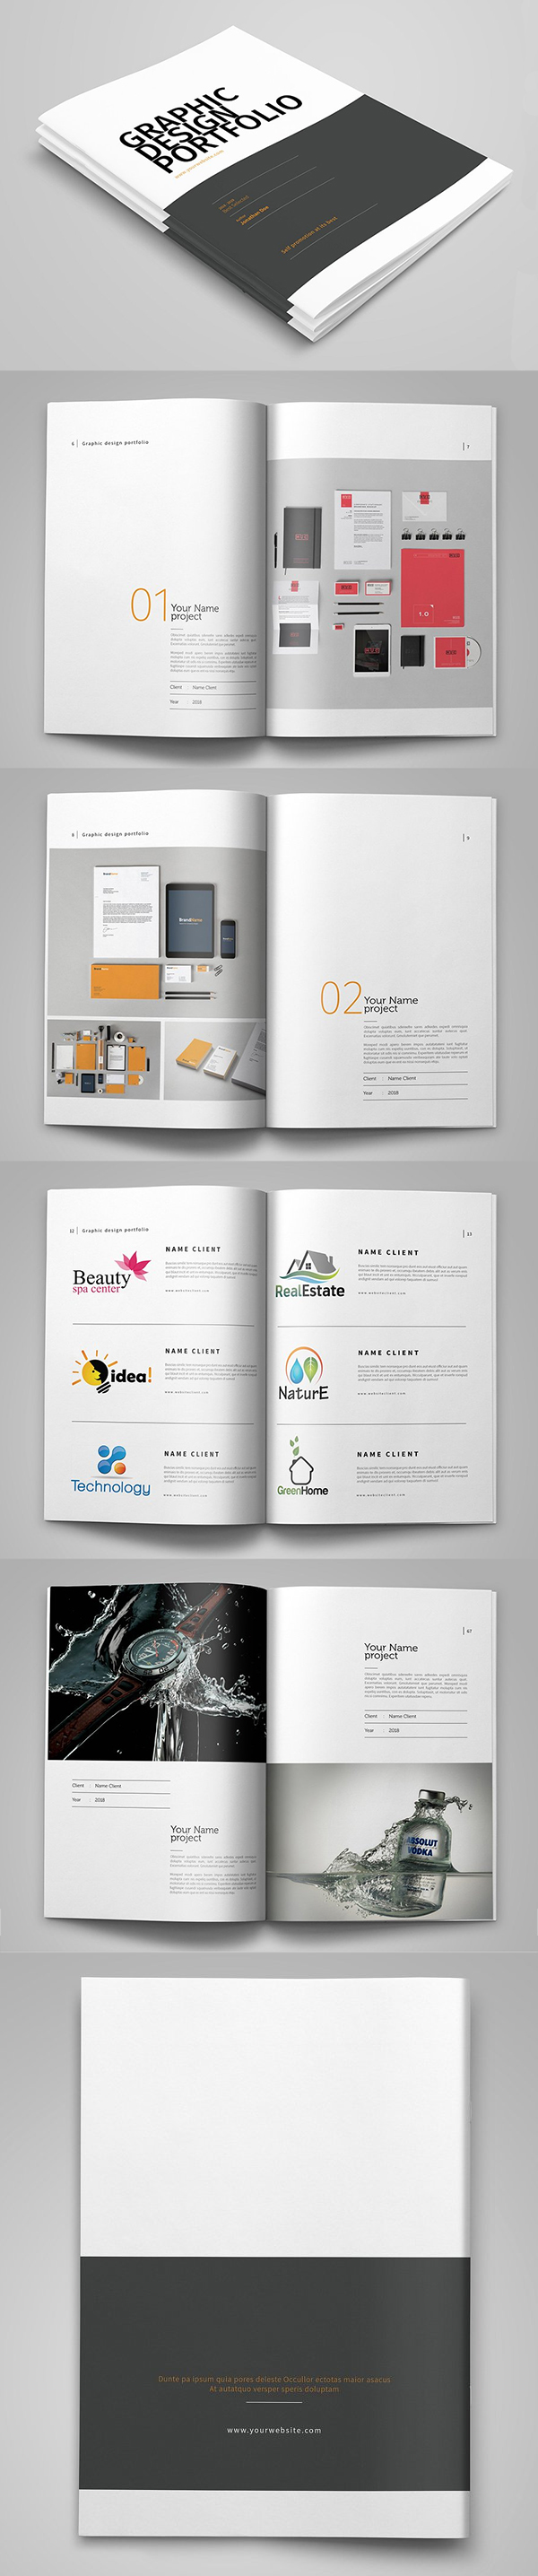 100 Professional Corporate Brochure Templates - 62